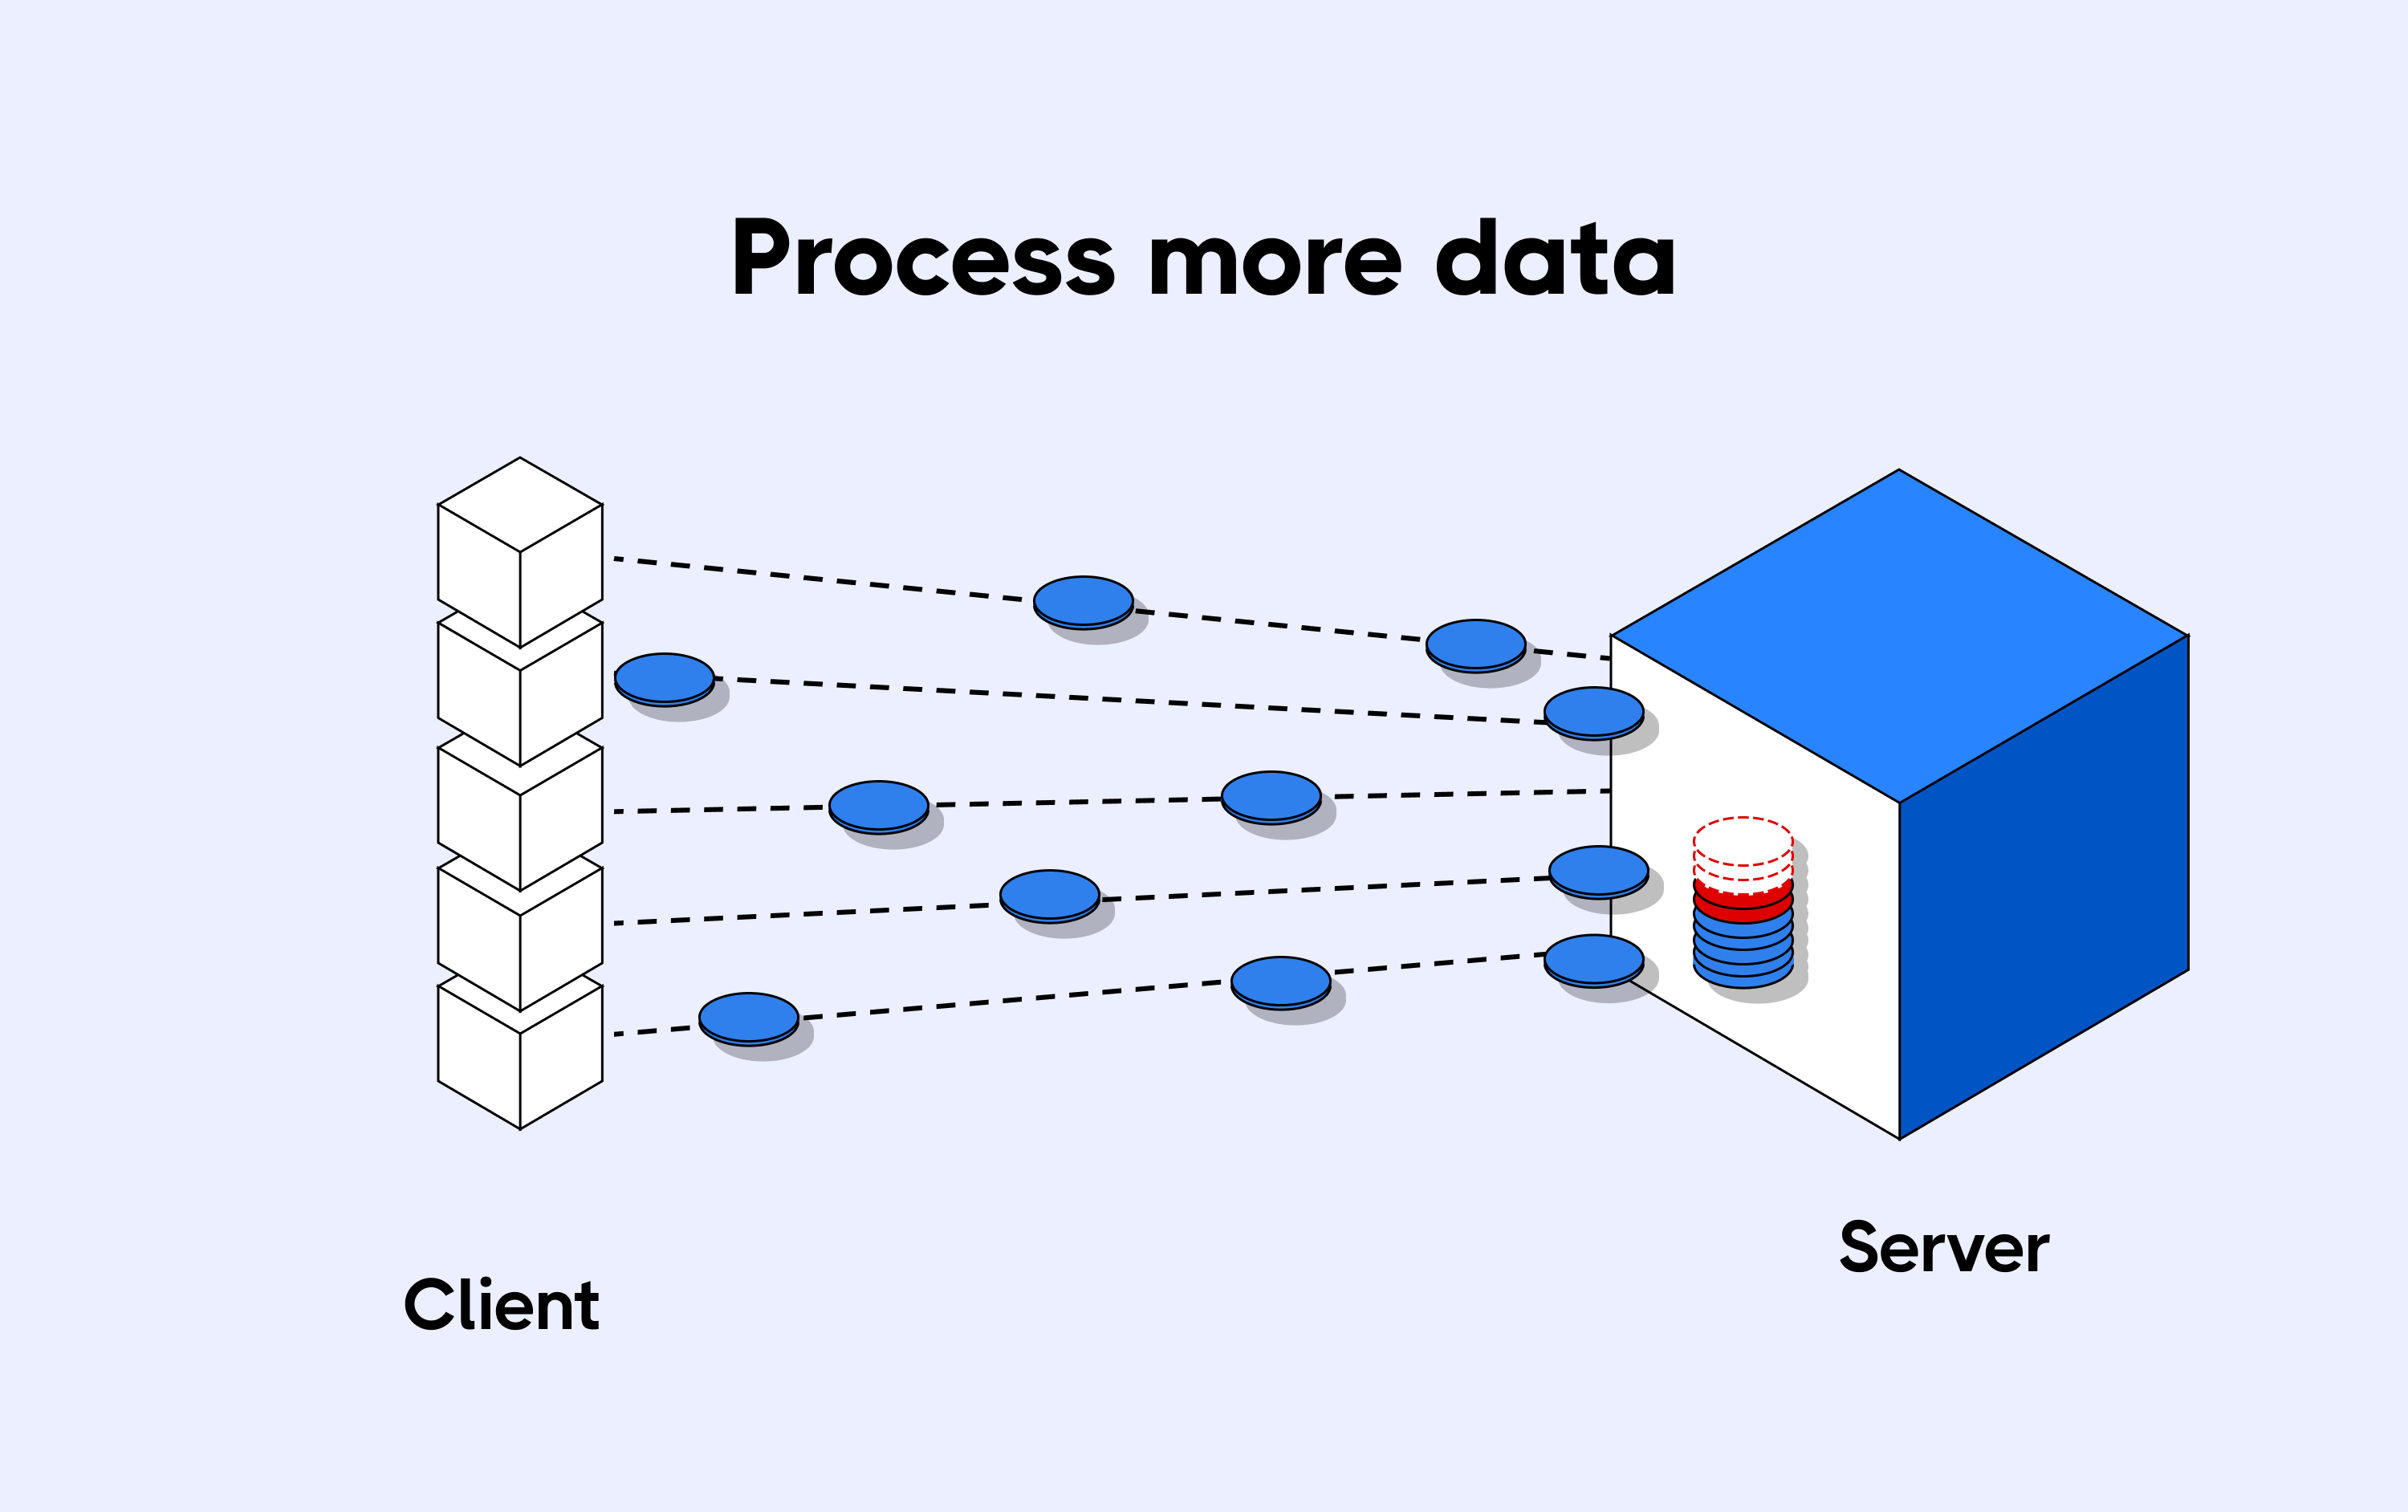 Scalability issues to process more data